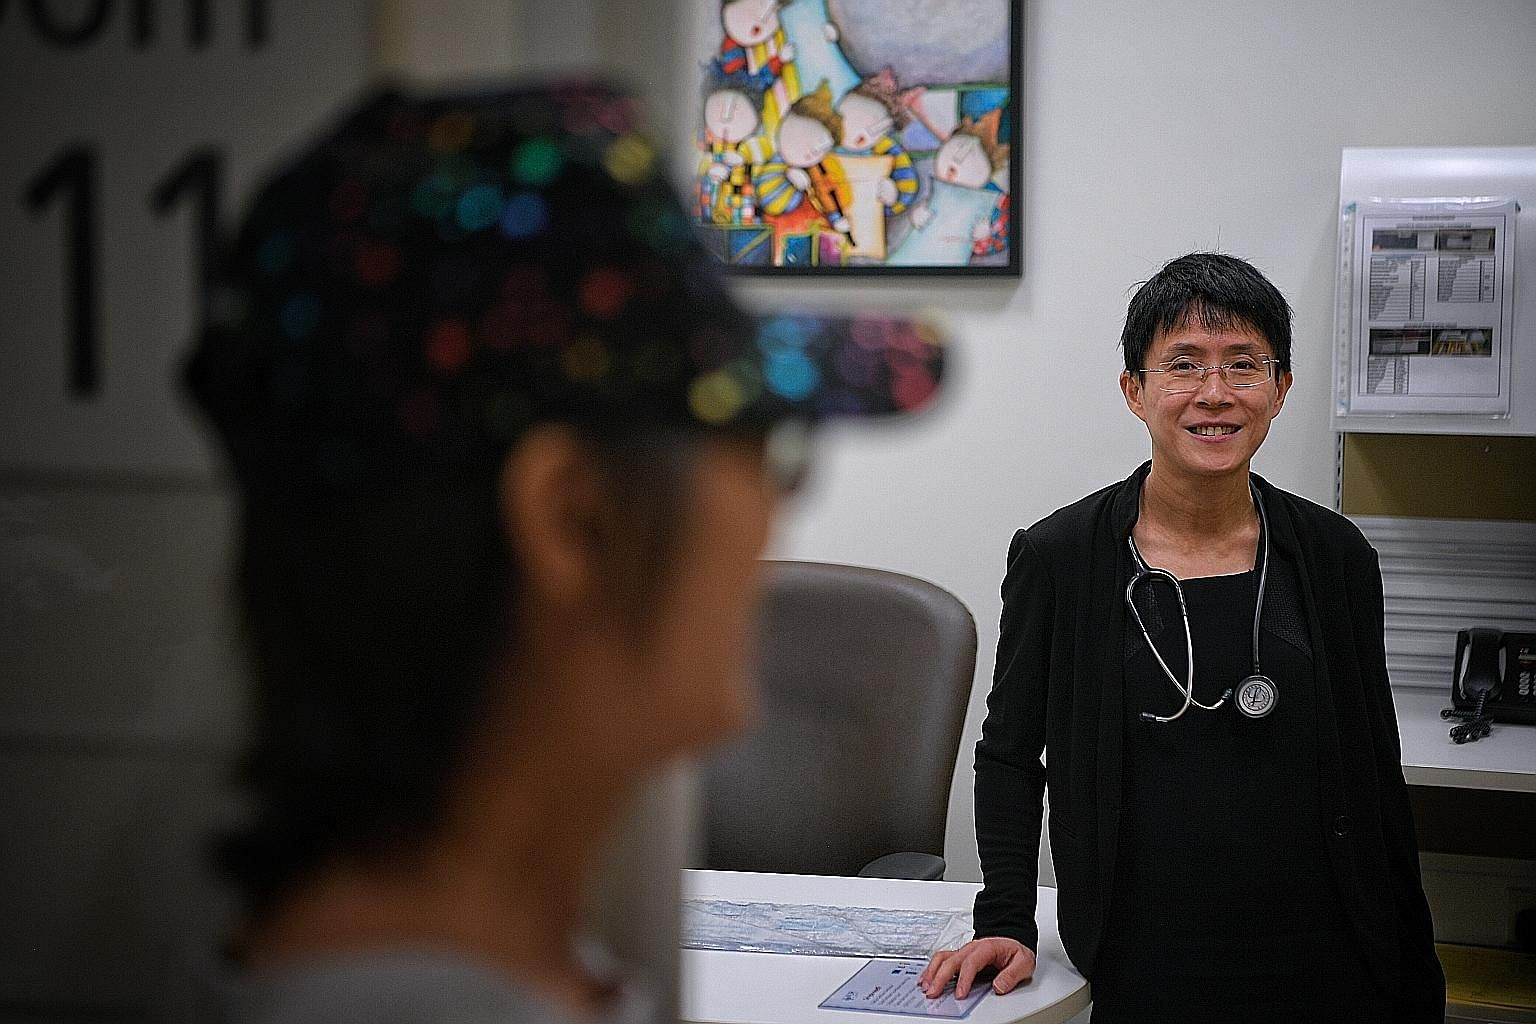 Associate Professor Lee Soo Chin, head of the department of haematology-oncology at National University Cancer Institute, Singapore, with breast-cancer patient Kwok Pui Yee, who started taking the drug last year. Called Olaparib, it kept her cancer u